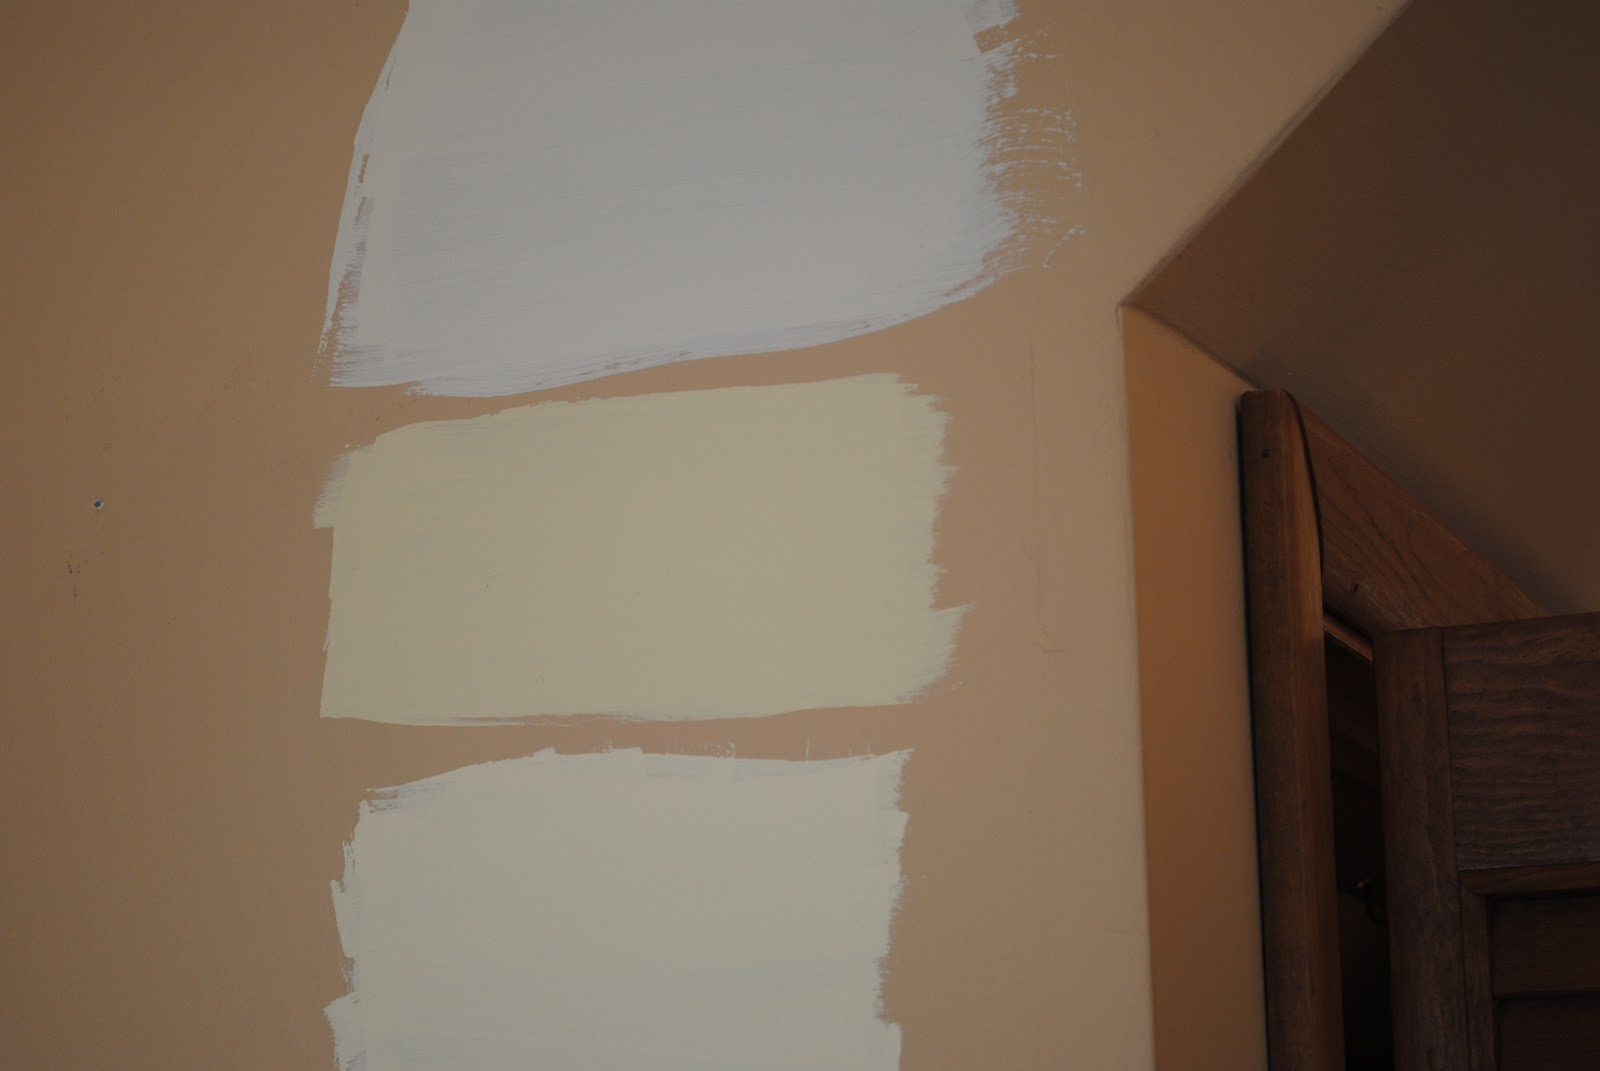 Benjamin moore paint vs sherwin williams which one is personal blog